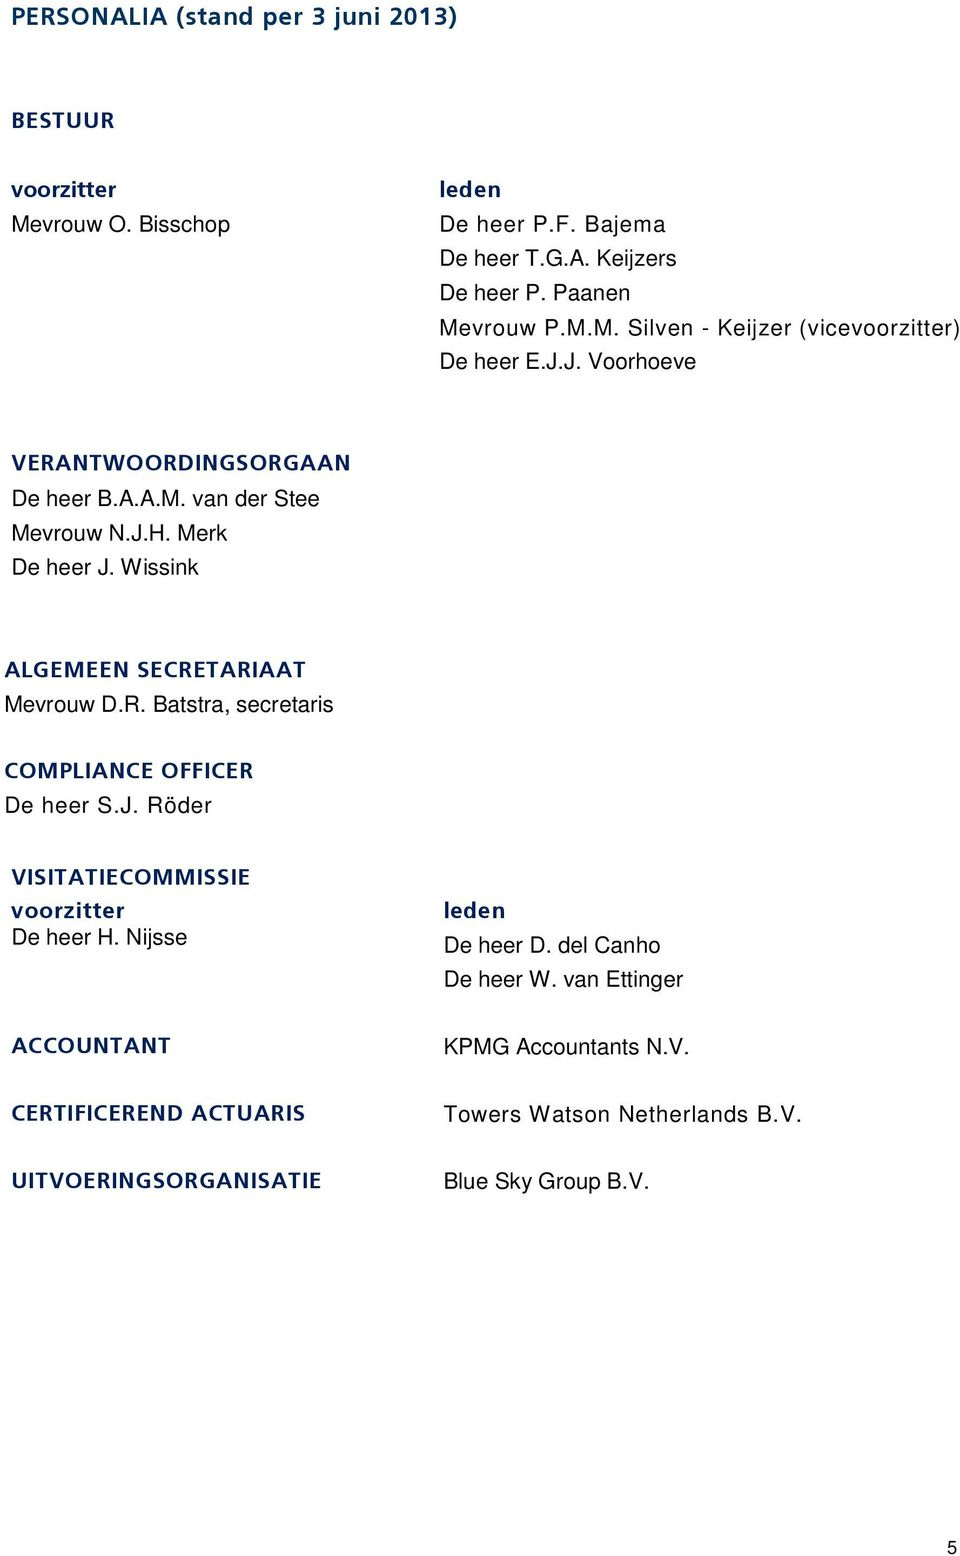 J. Röder VISITATIECOMMISSIE voorzitter De heer H. Nijsse leden De heer D. del Canho De heer W. van Ettinger ACCOUNTANT KPMG Accountants N.V. CERTIFICEREND ACTUARIS Towers Watson Netherlands B.